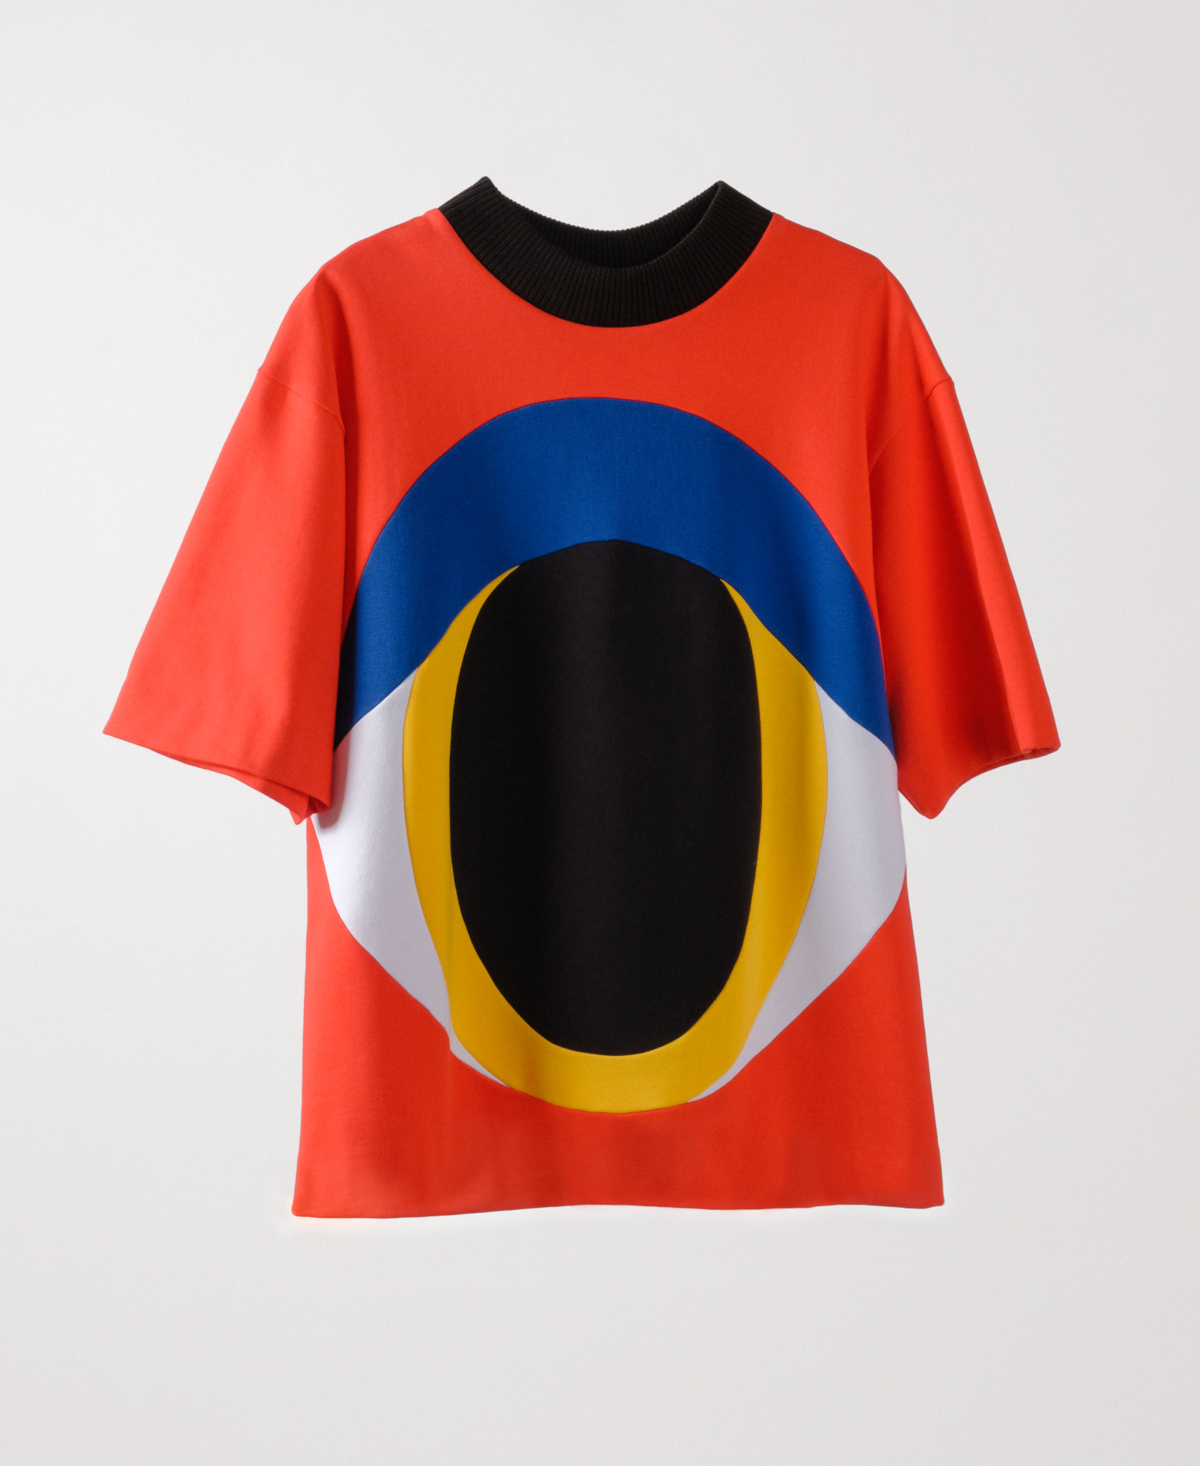 The Look Red T-shirt